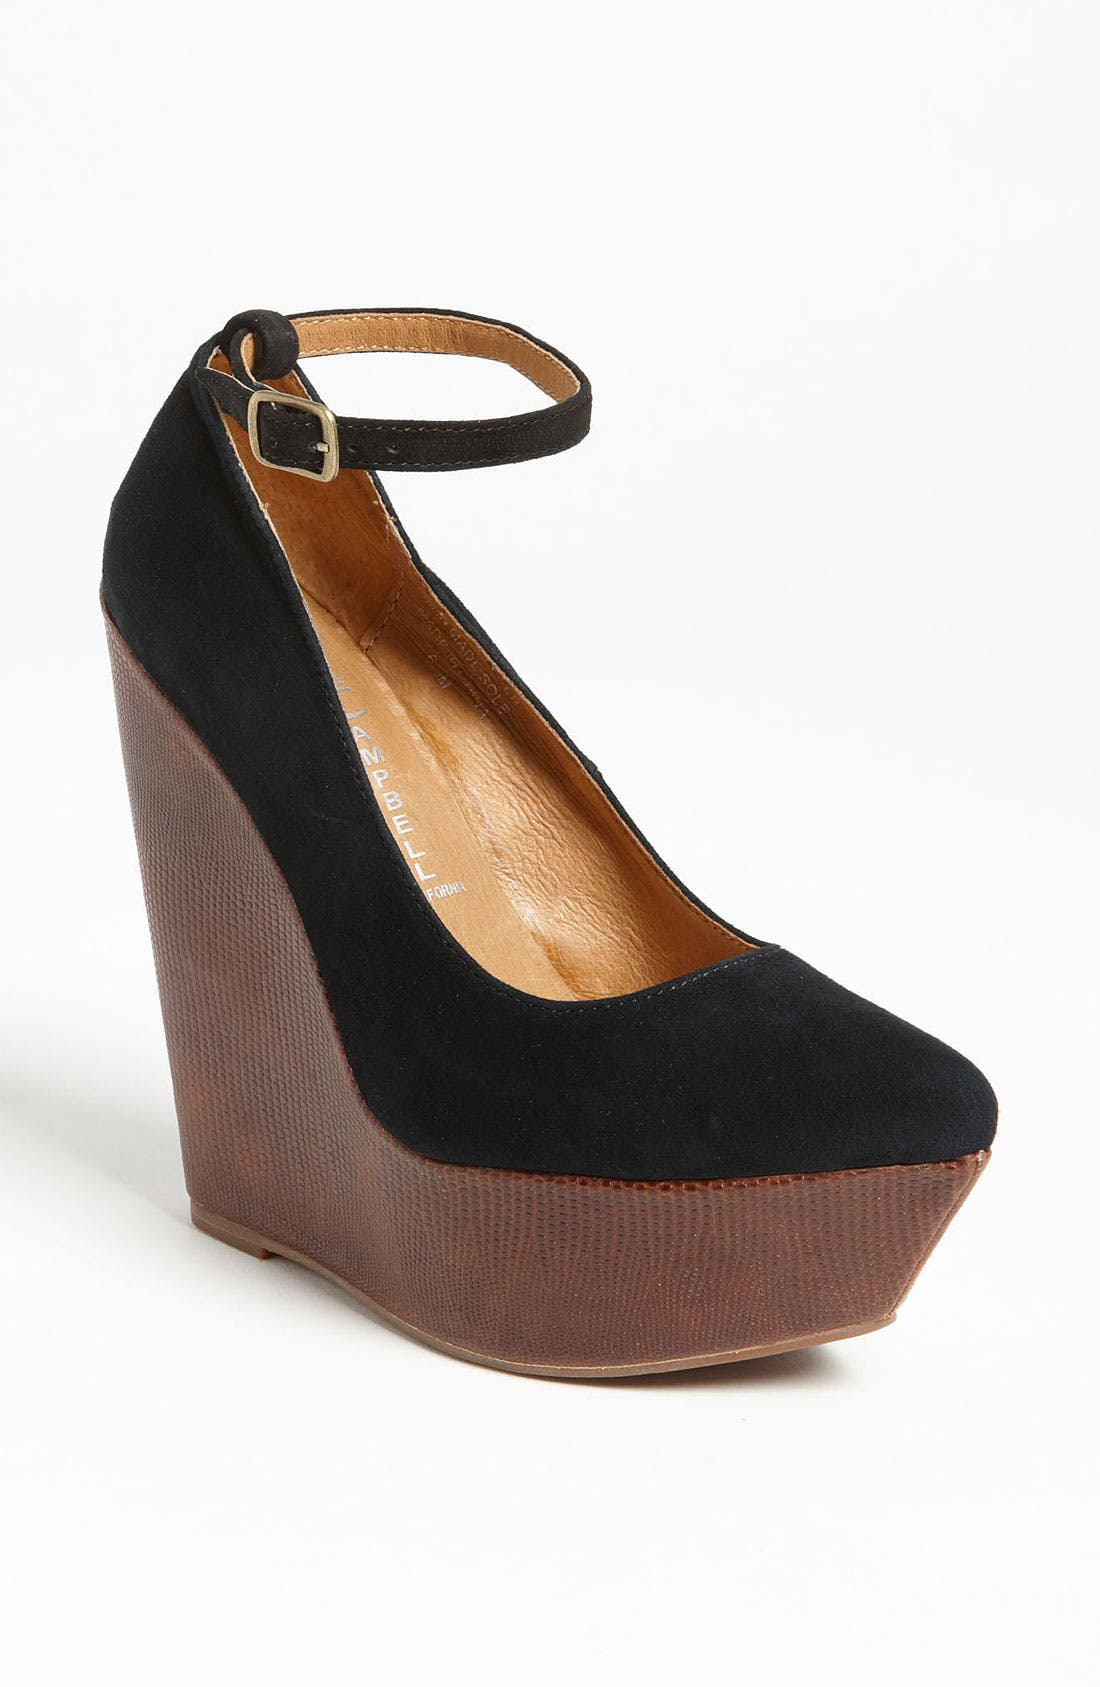 Alternate Image 1 Selected - Jeffrey Campbell 'Pizan' Pump